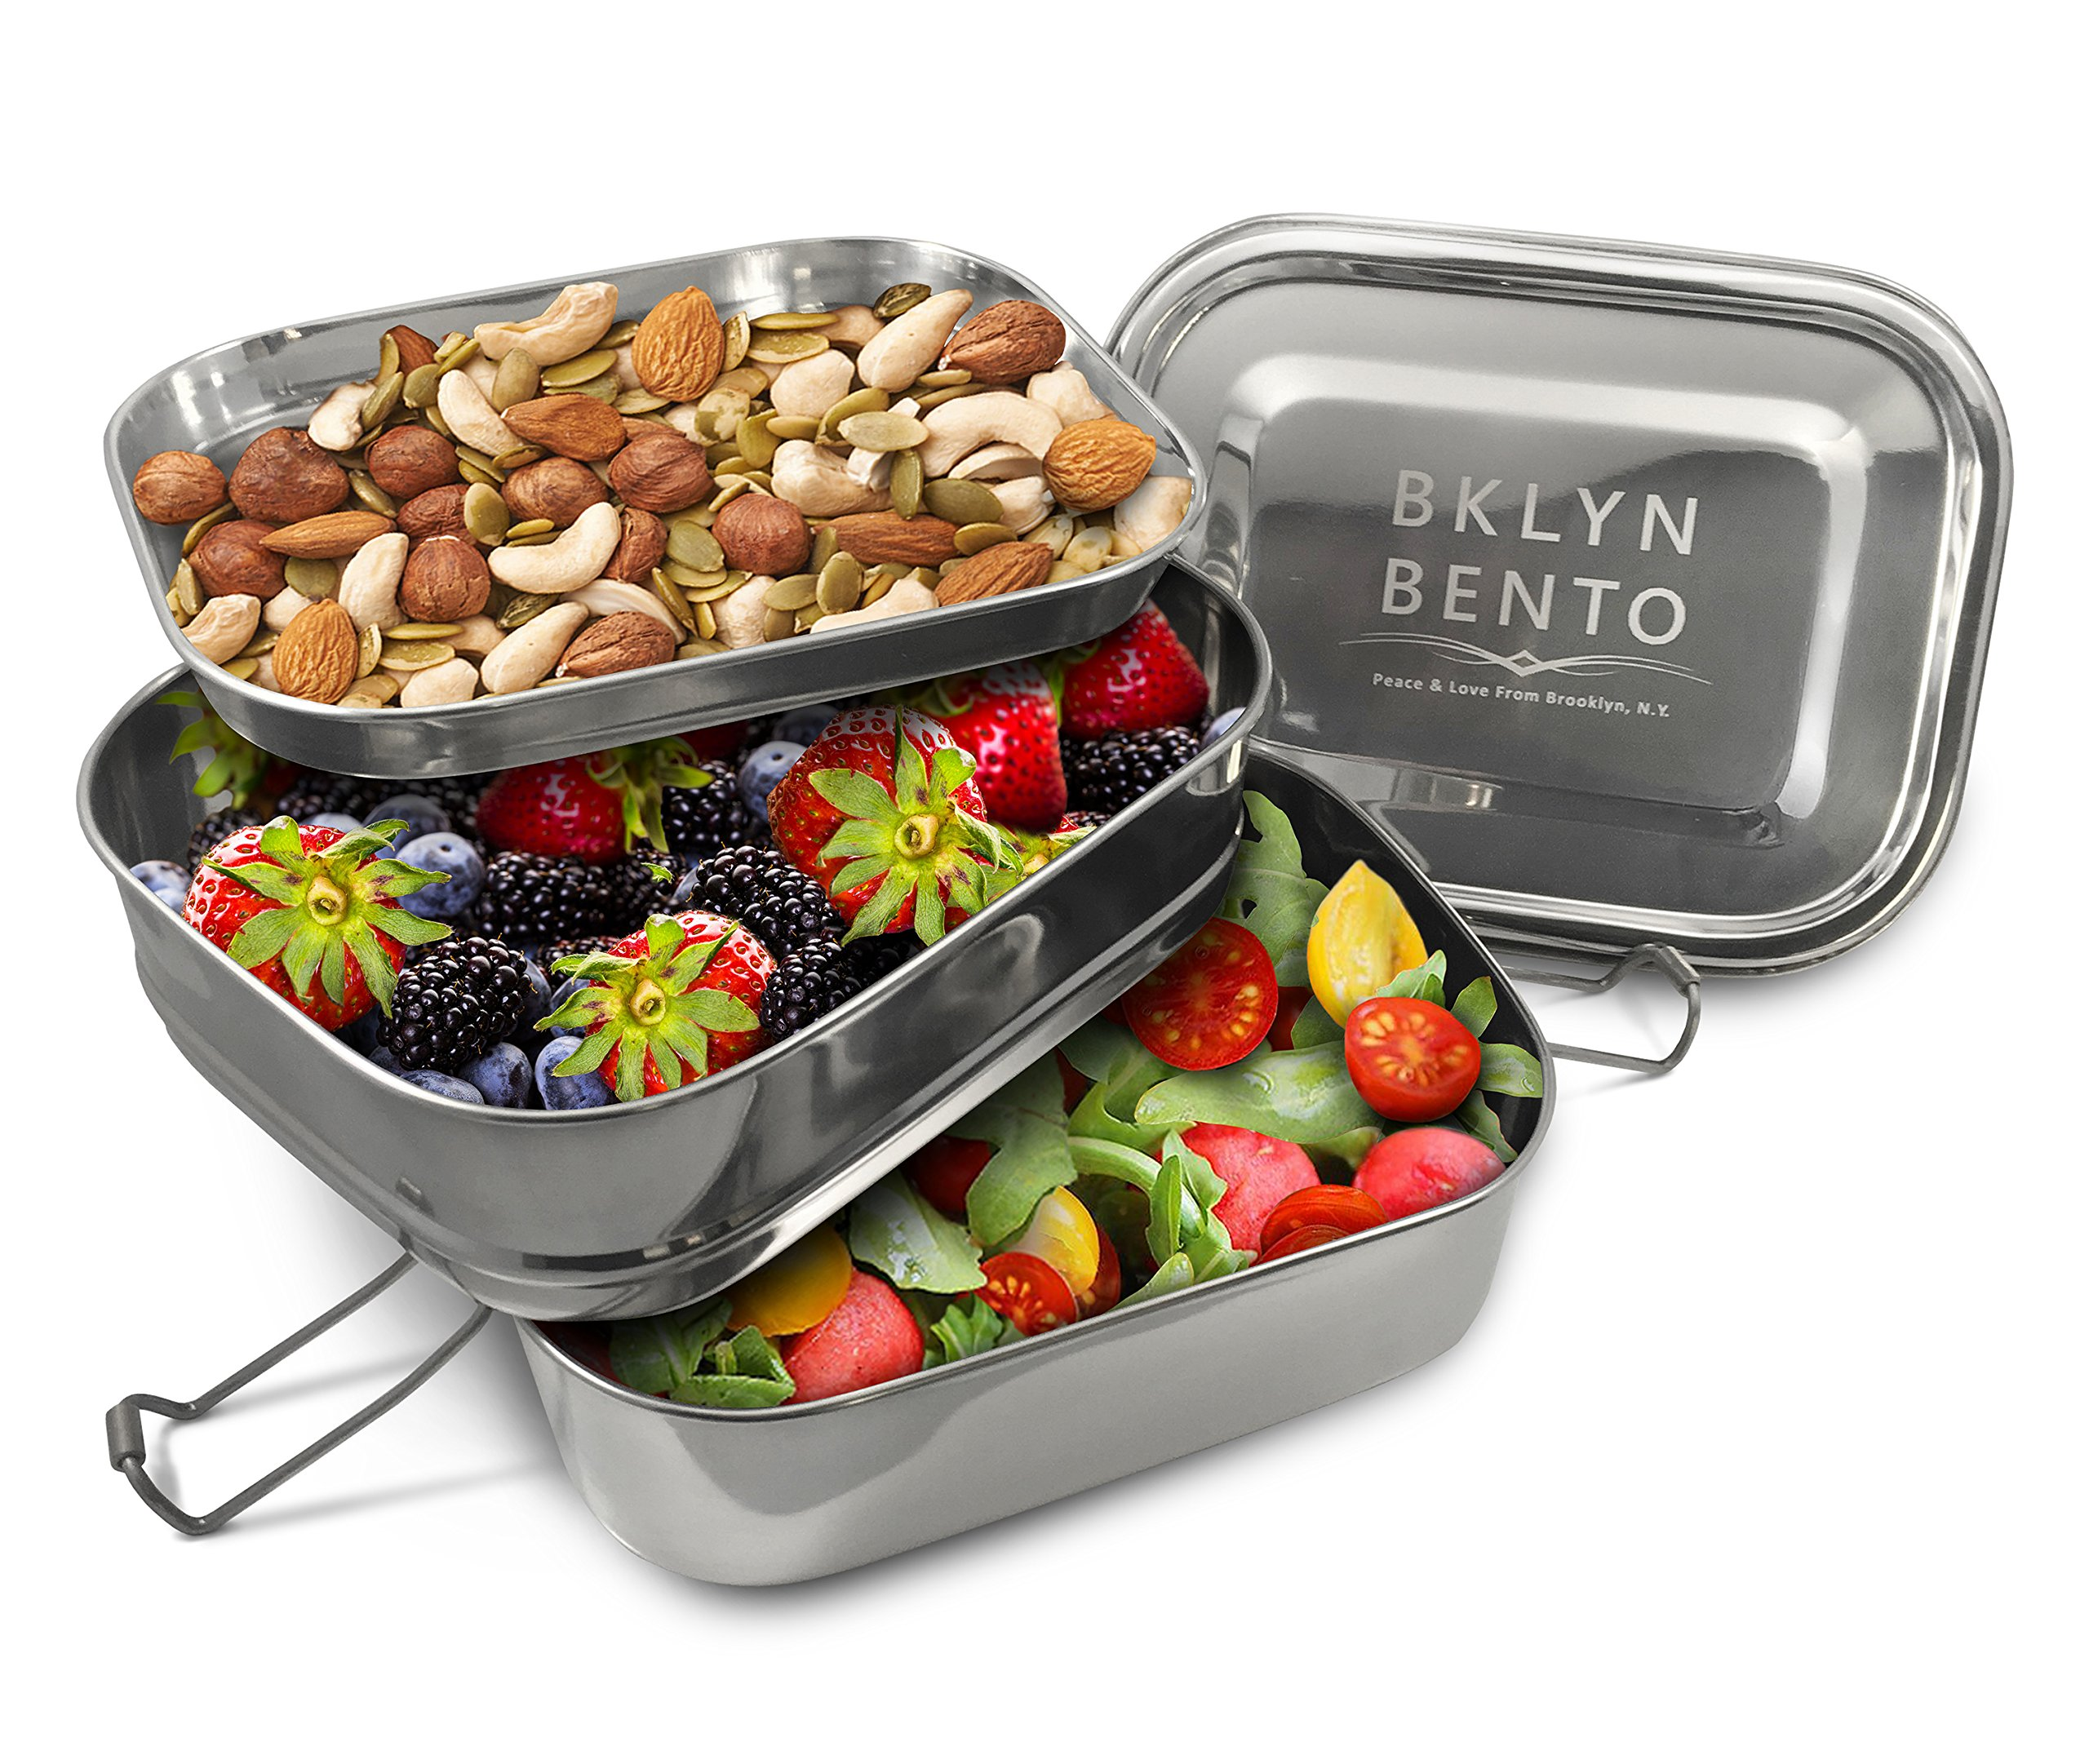 Stainless Steel Bento Box Lunch Box, A Large Metal 3 Tier Tiffin Food Container Snack Lunchbox For Boys Girls Teens Kids & Adults, Eco Friendly Meal Prep Food Container Storage For School or Work